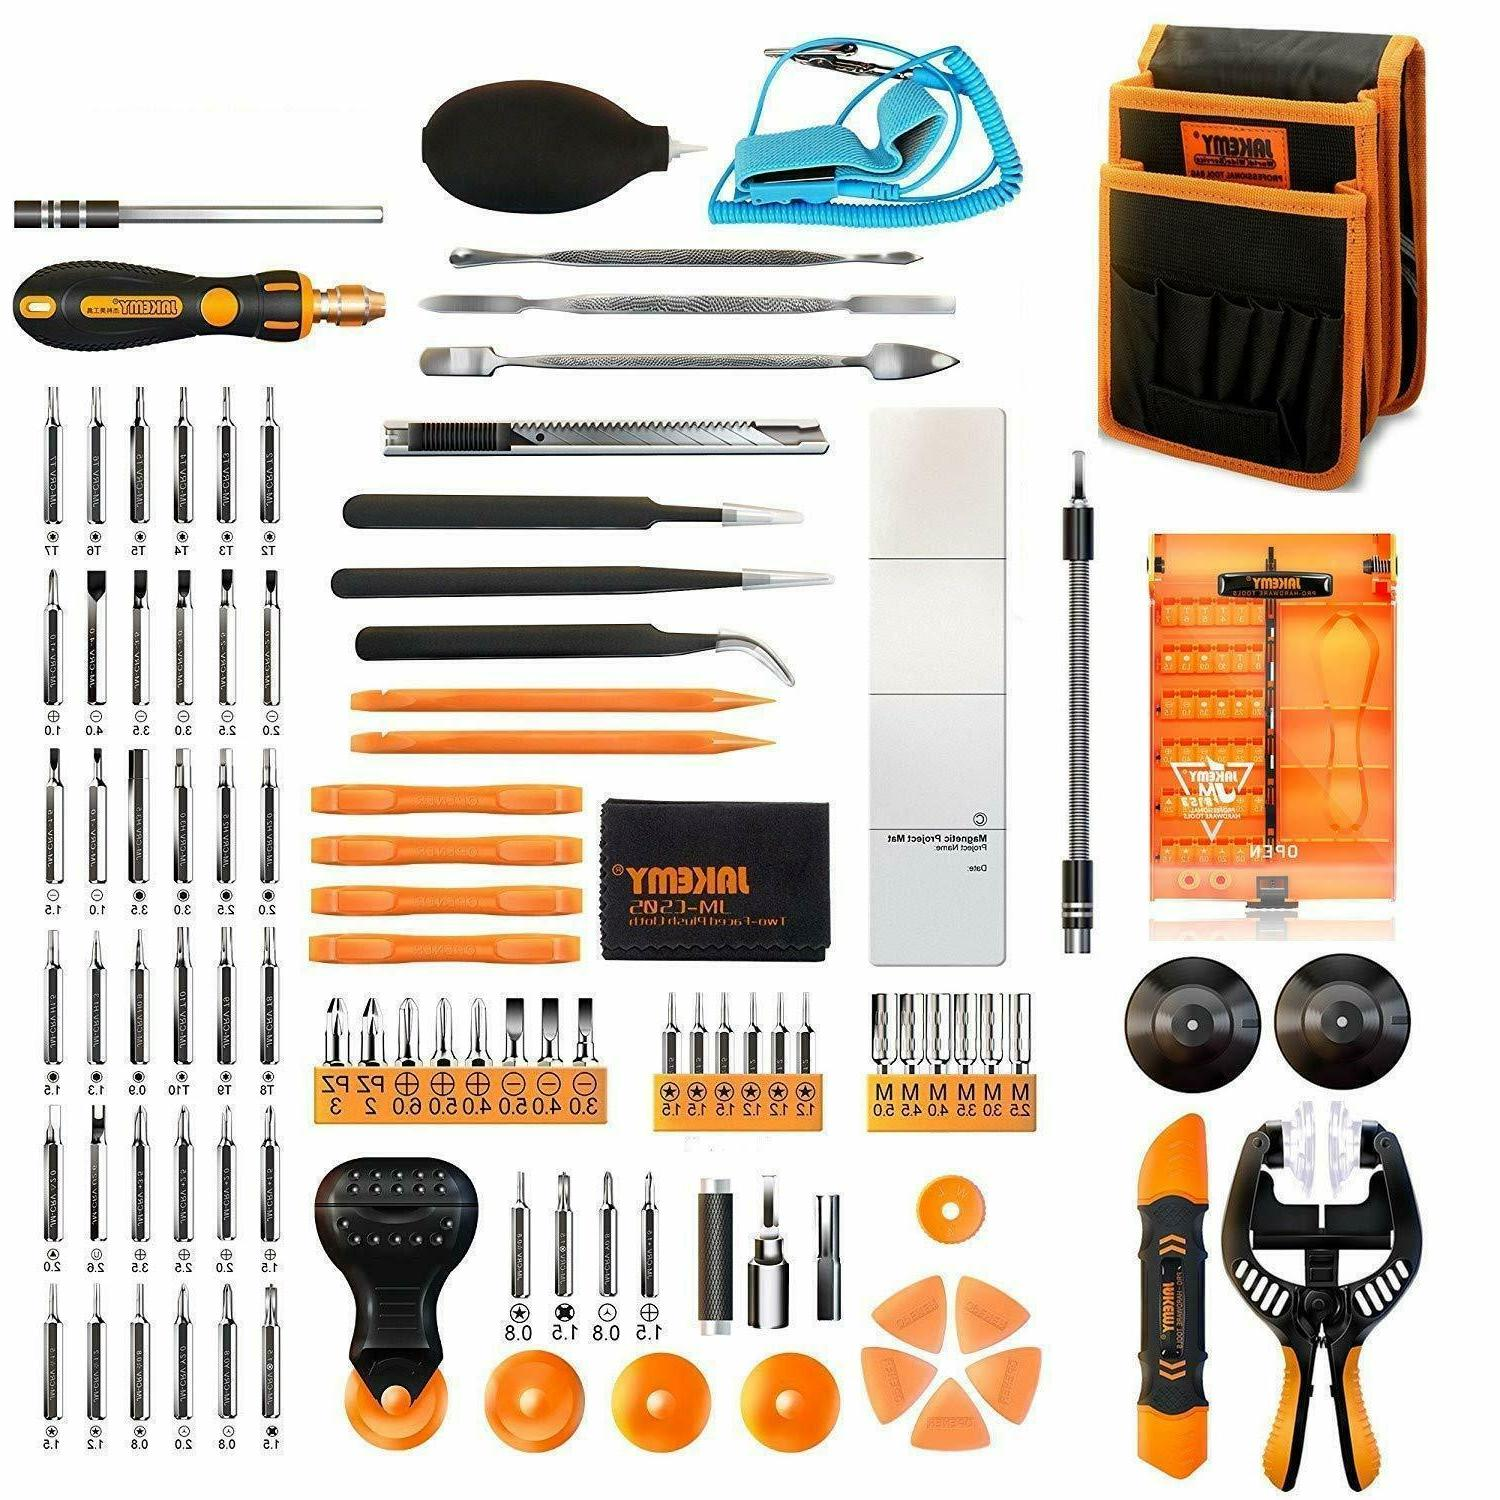 jakemy screwdriver set 99 in 1